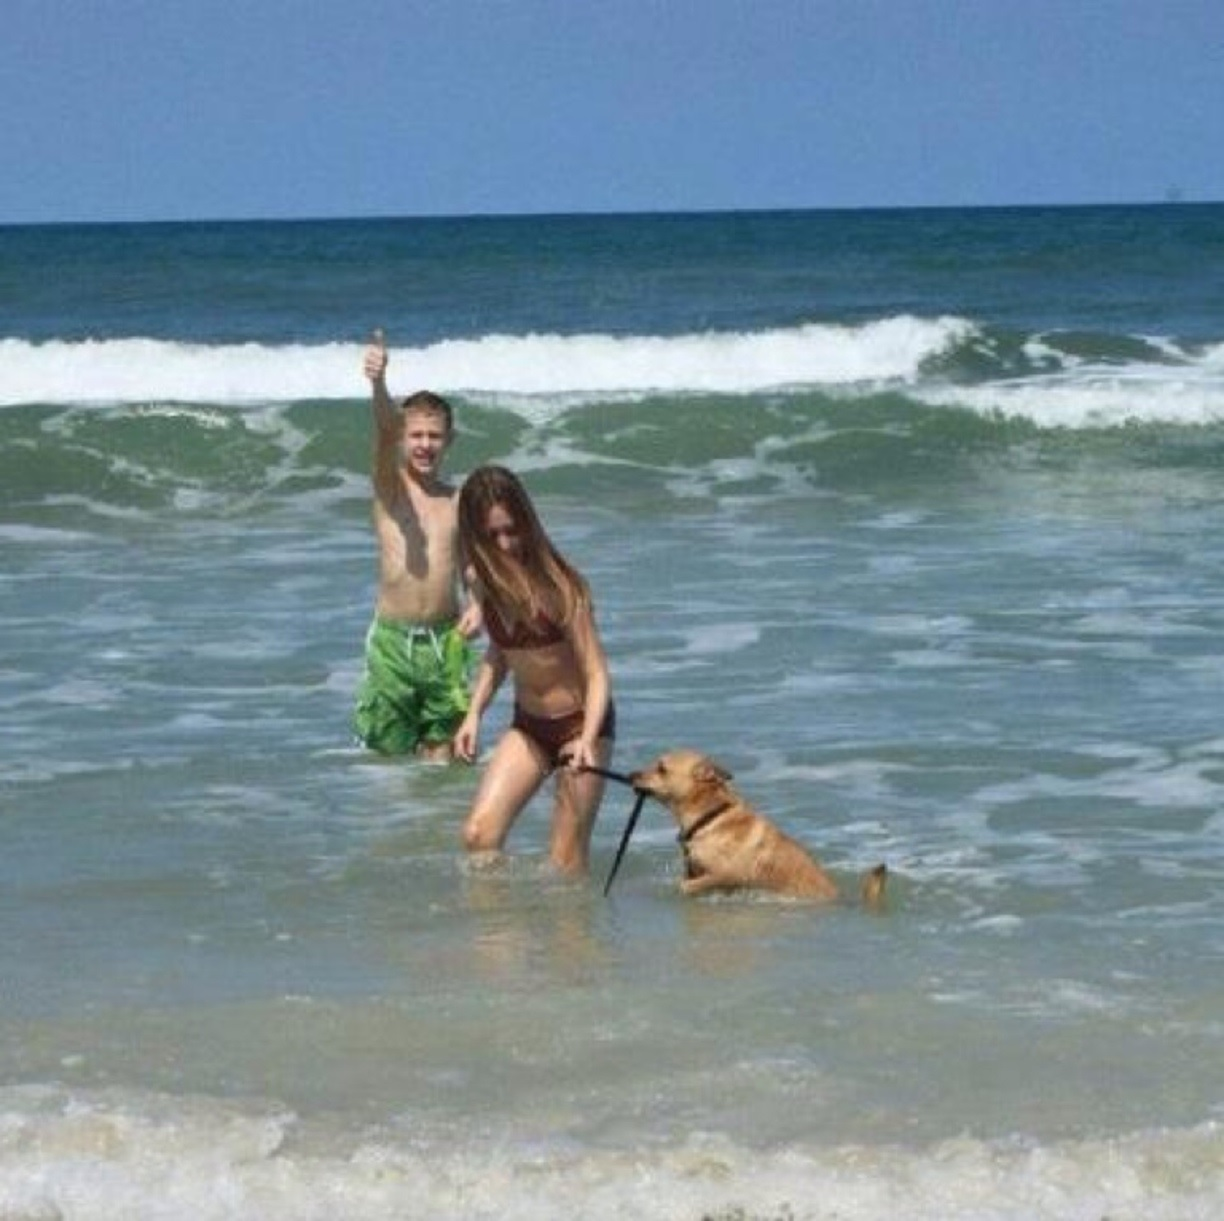 Read below to learn more about Daytona Beach for dogs